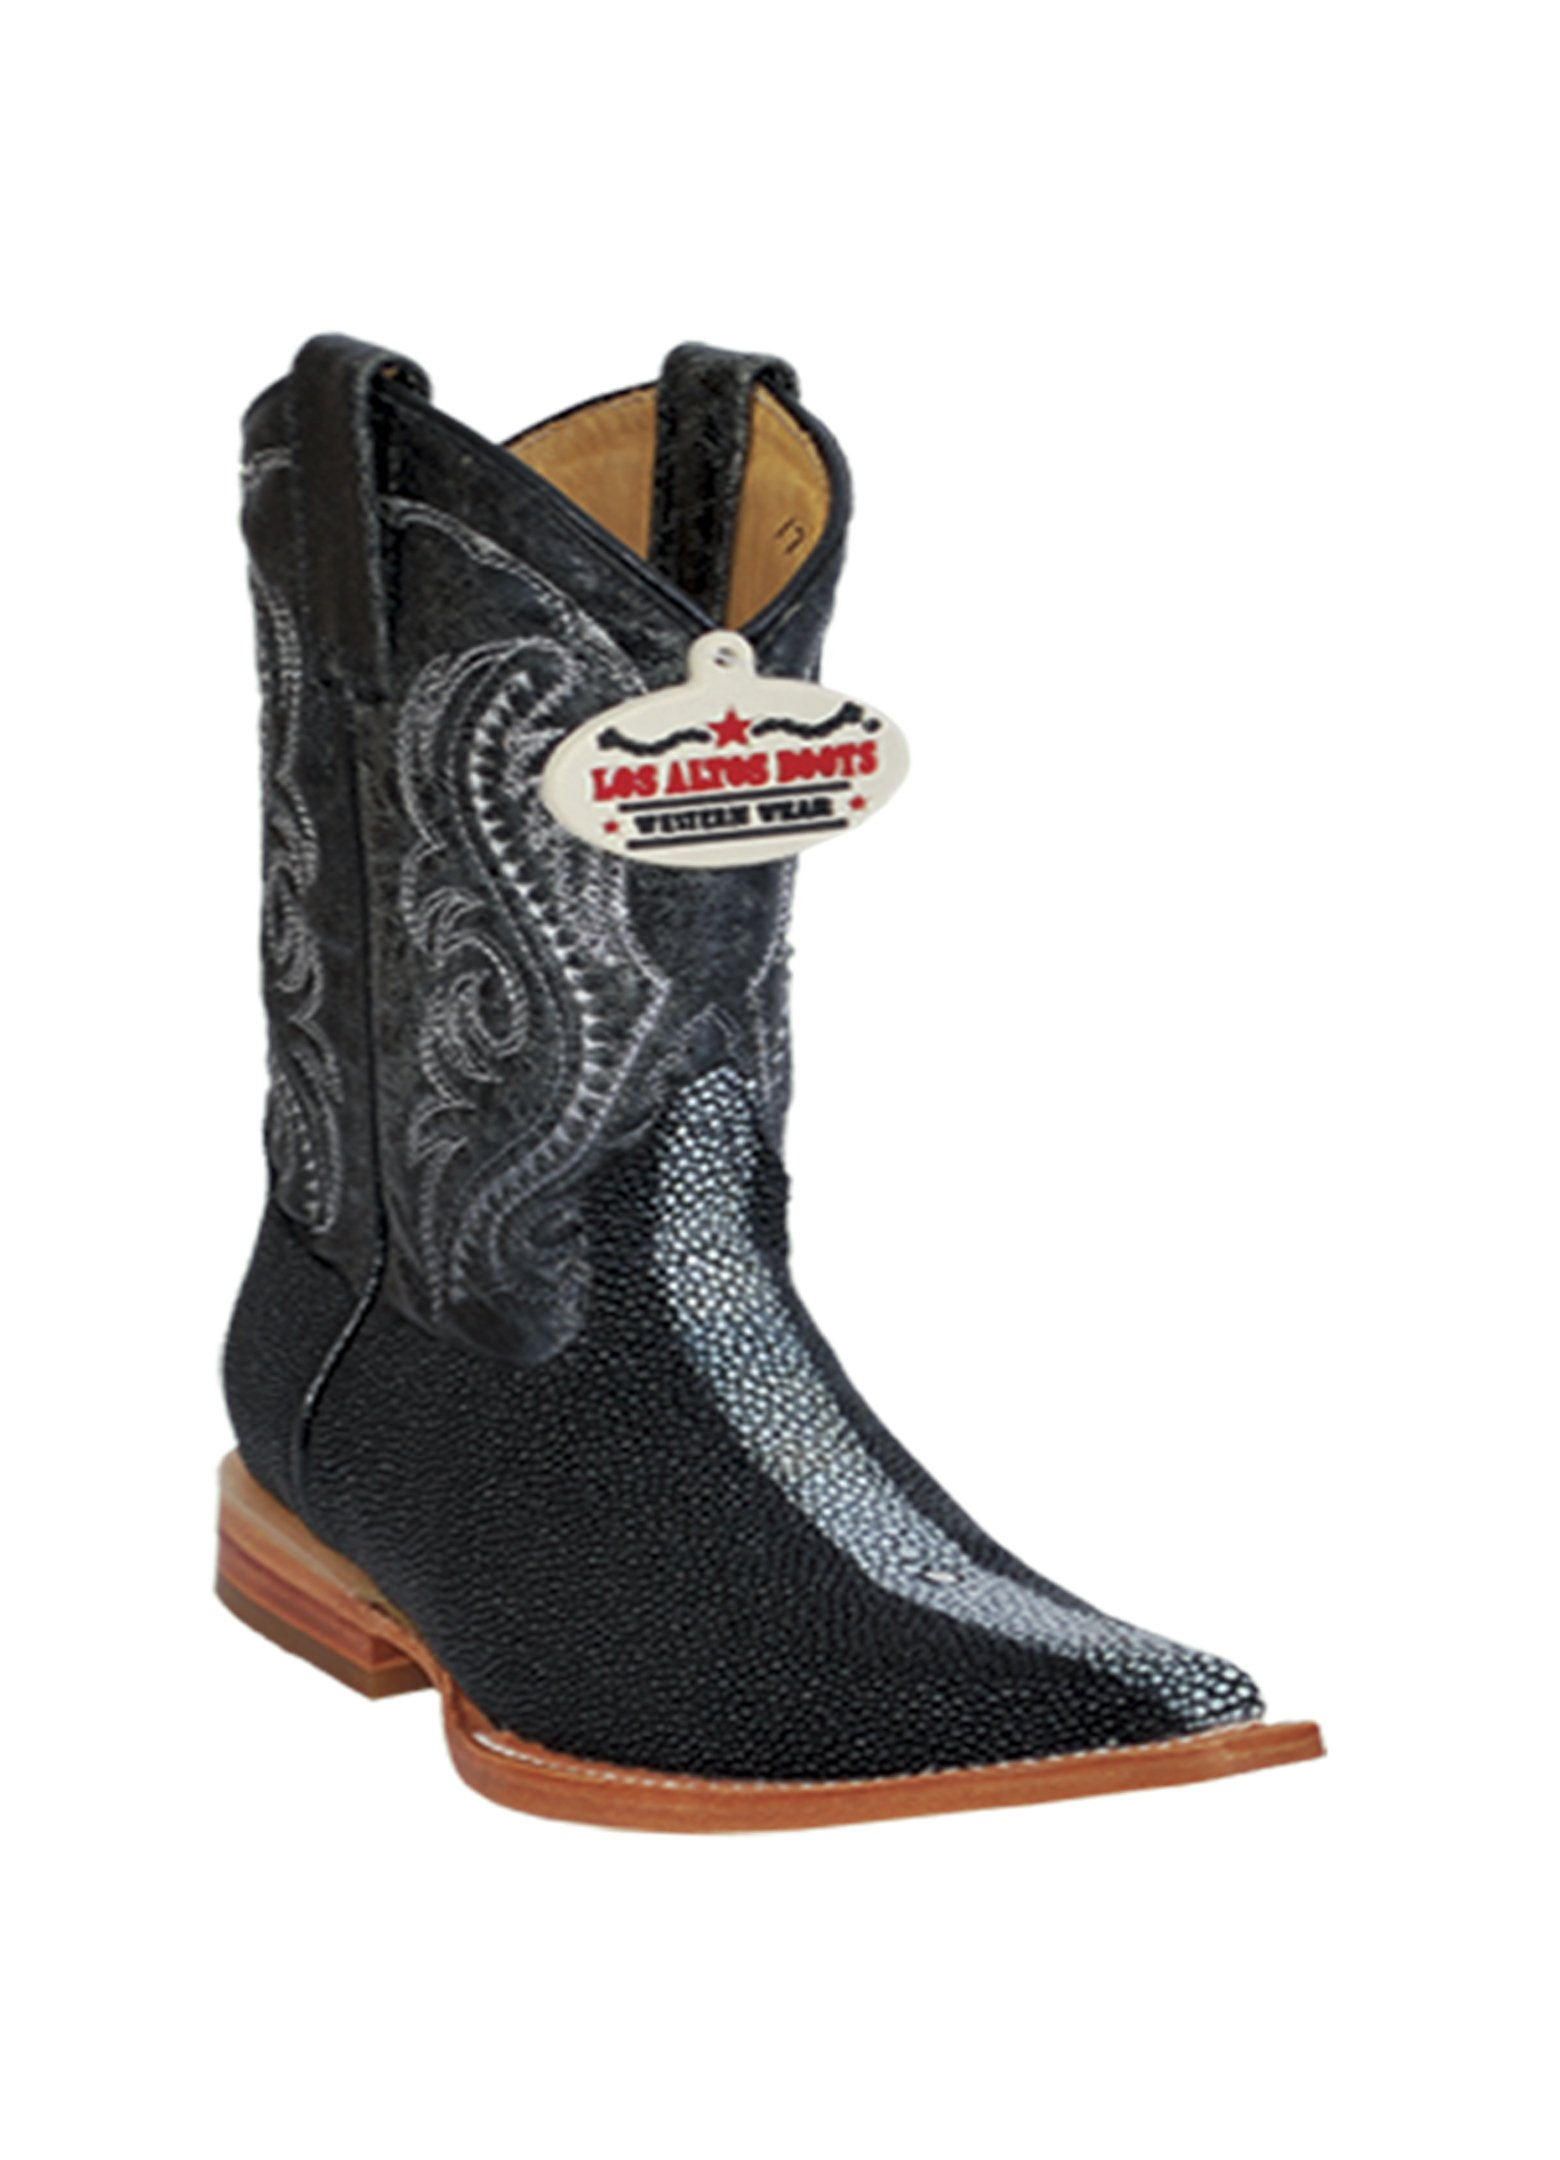 Kid's 3X-Toe Black Genuine Leather Original Stingray Rowstone Finish Skin Western Boots